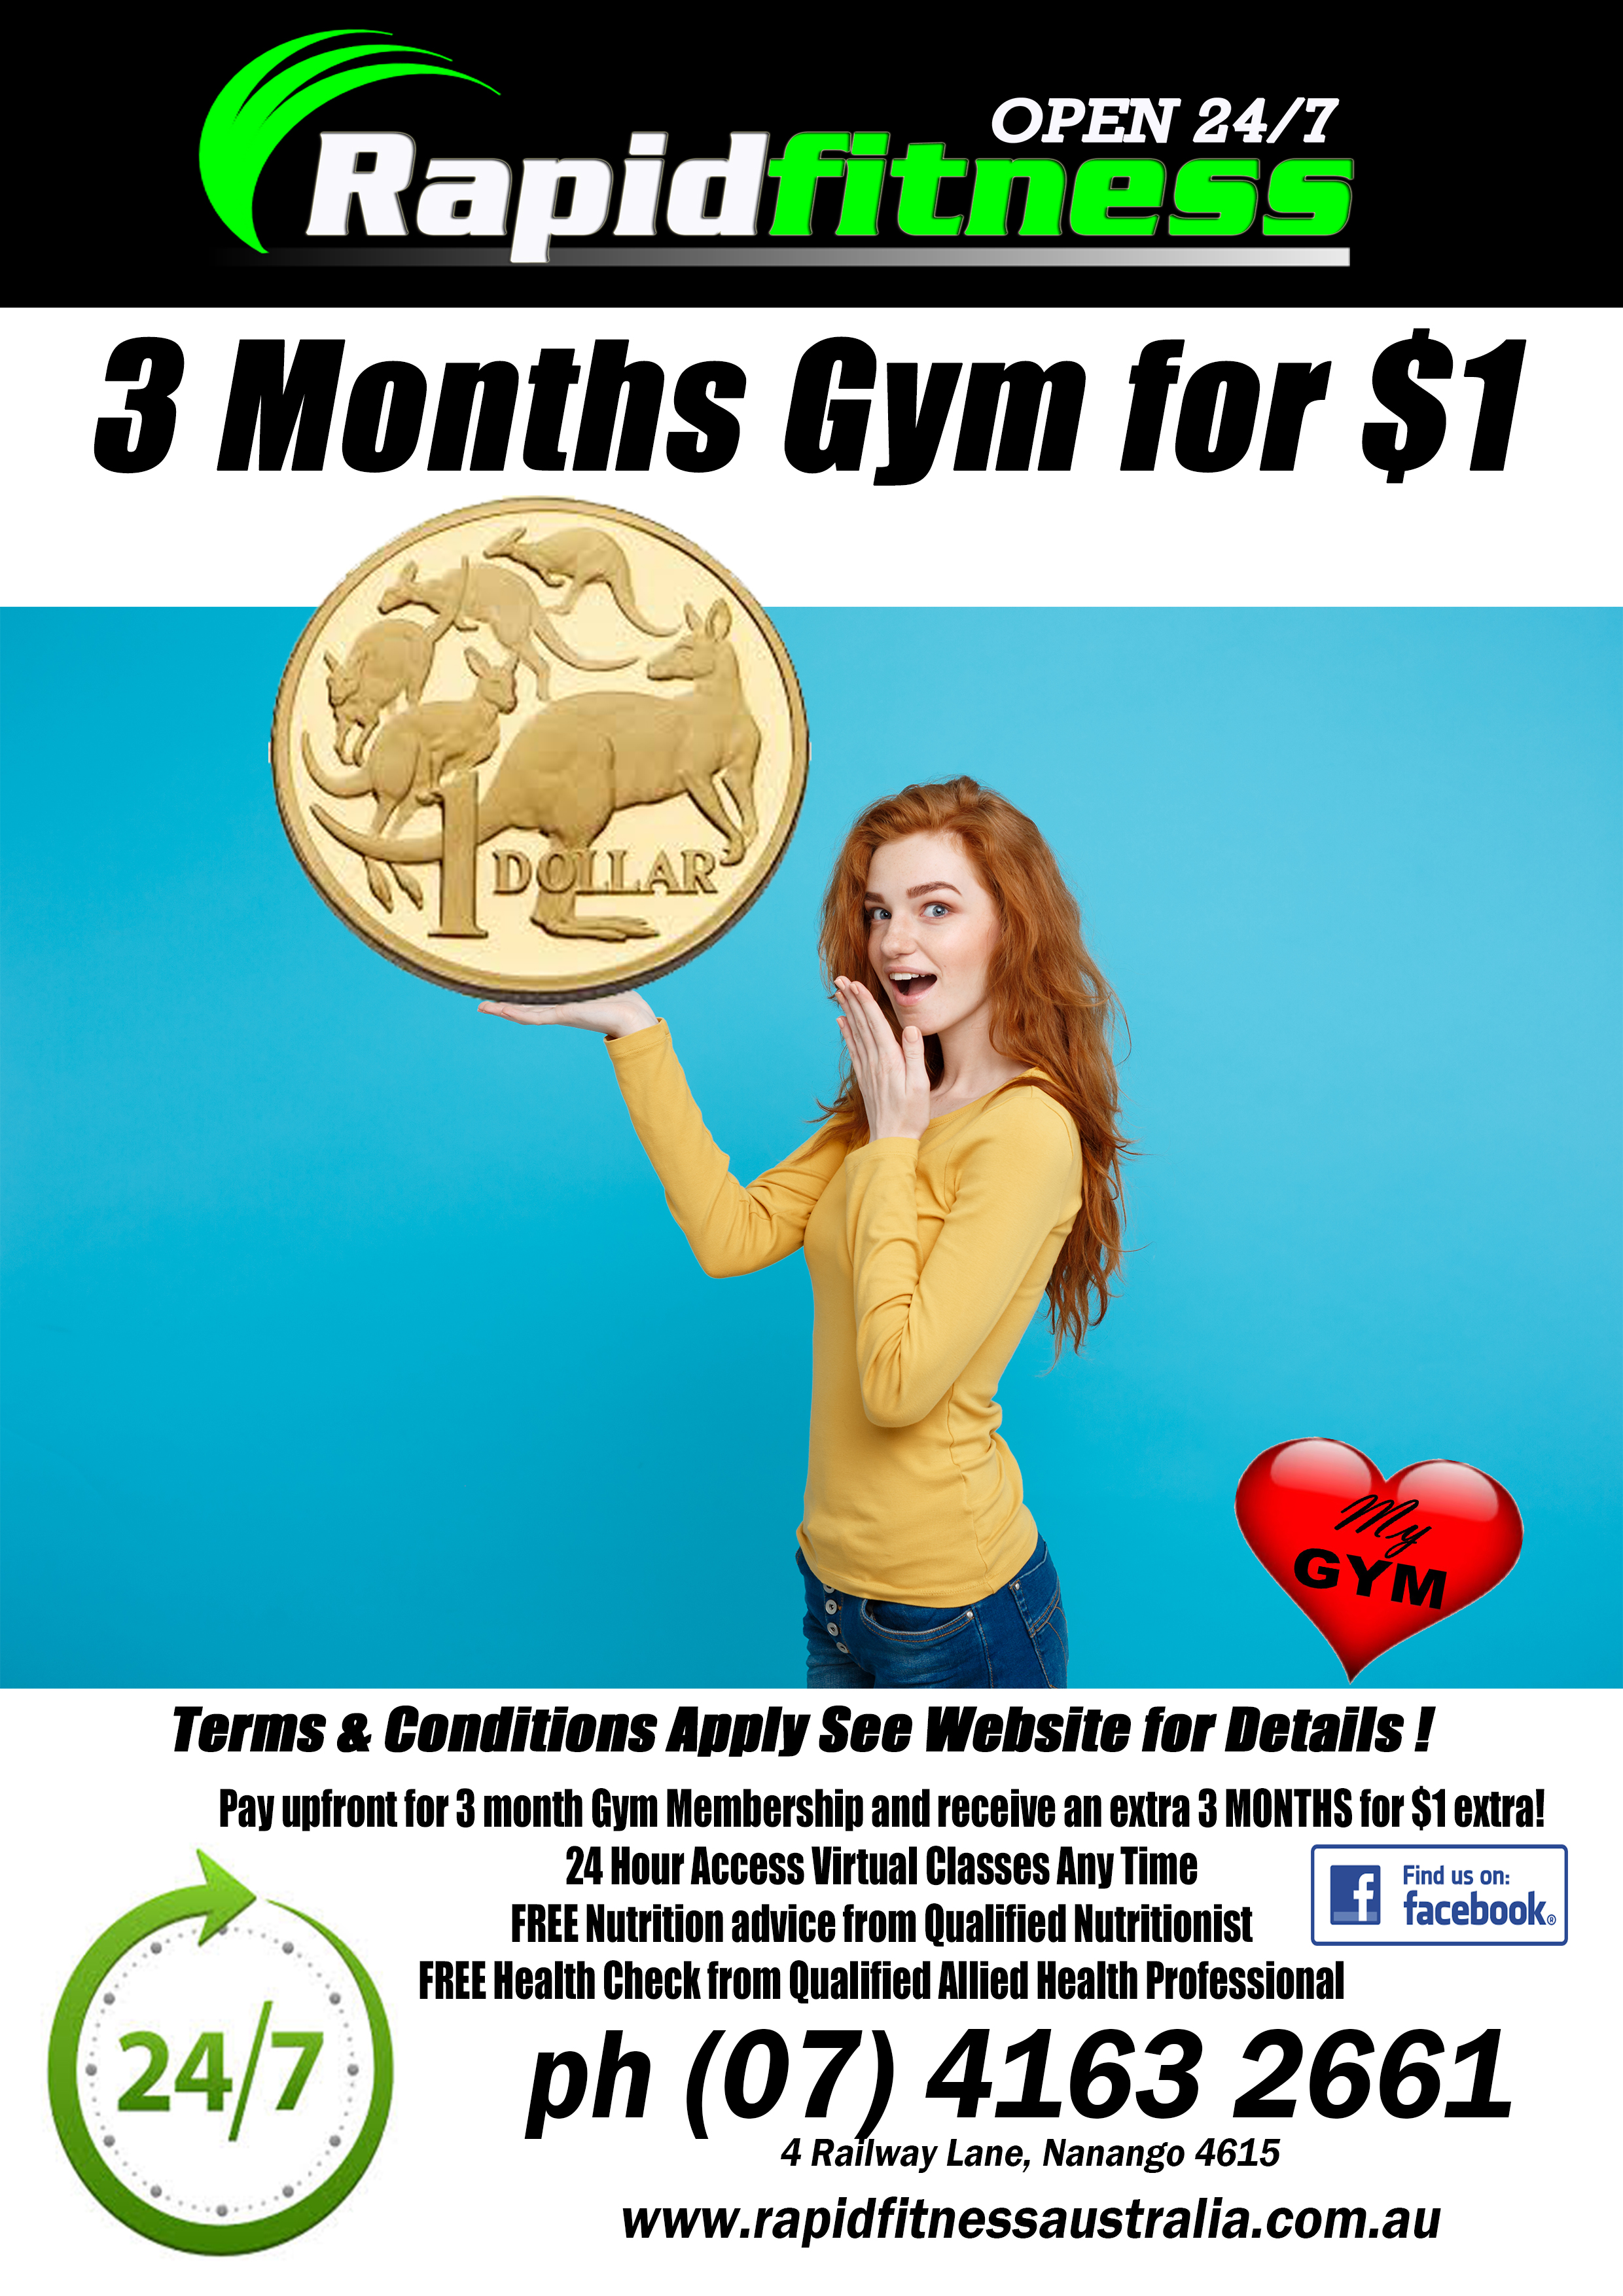 3 Months For $1 in November